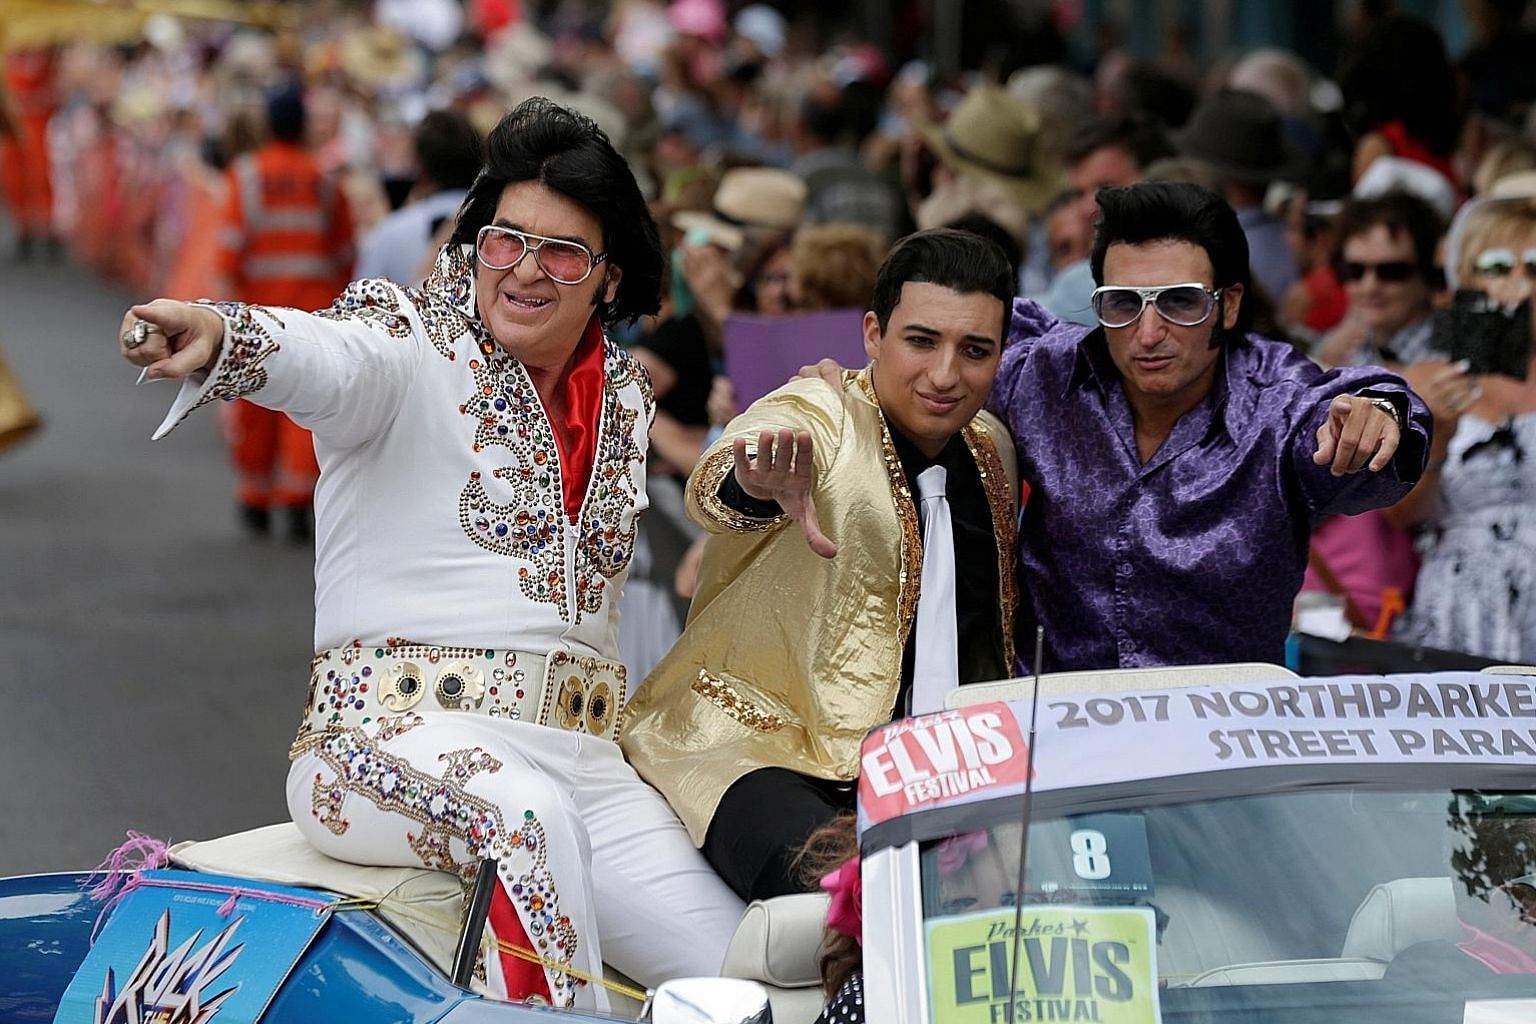 Men dressed as Elvis Presley ride in the back of a convertible during a street parade at the annual Parkes Elvis Festival last Saturday. Across the country, small towns have been finding creative ways to put themselves on the tourist map.